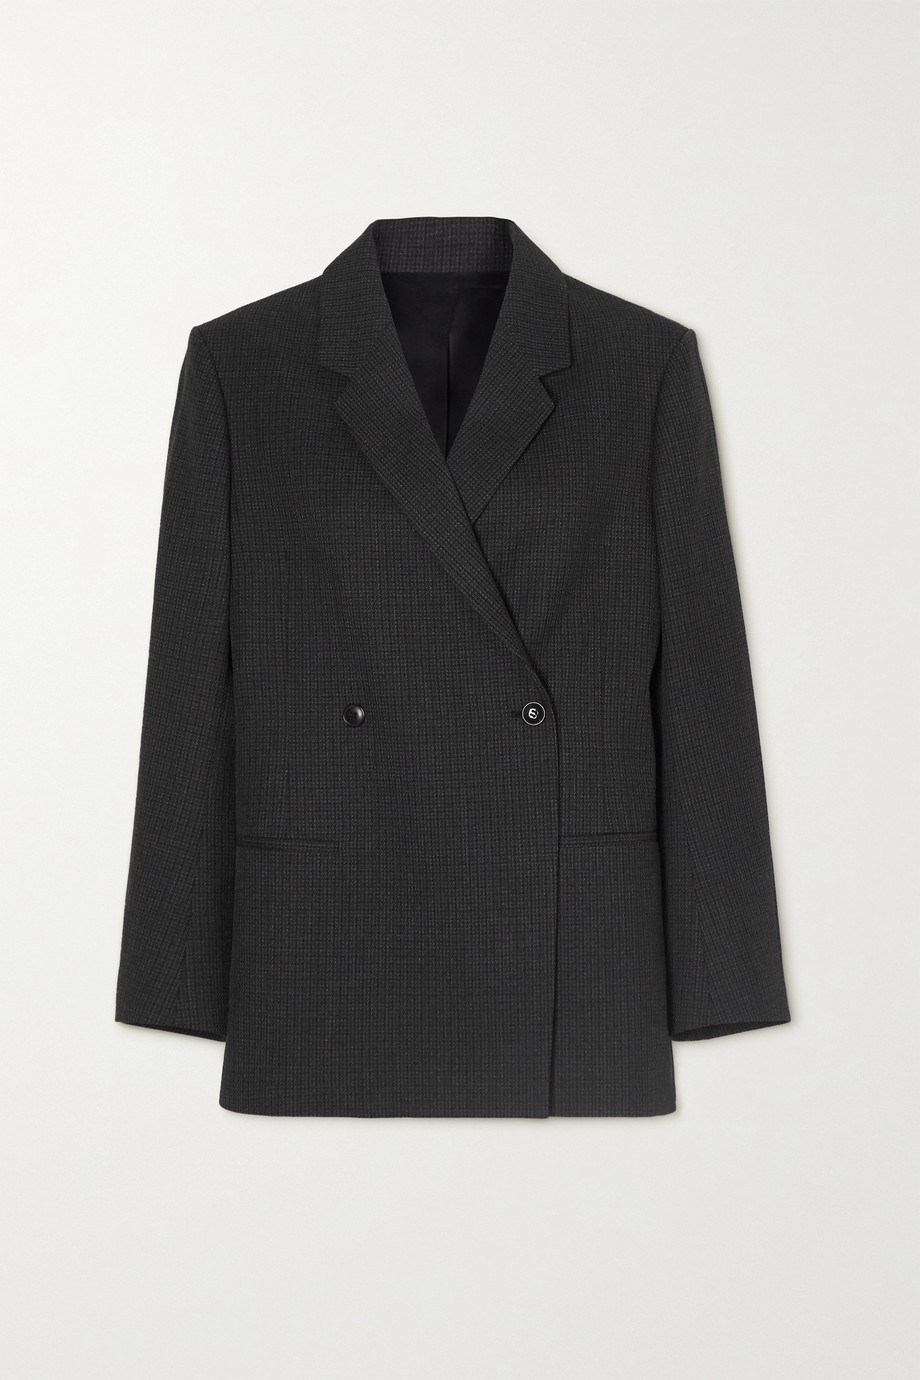 Totême Loreo double-breasted checked wool-tweed blazer